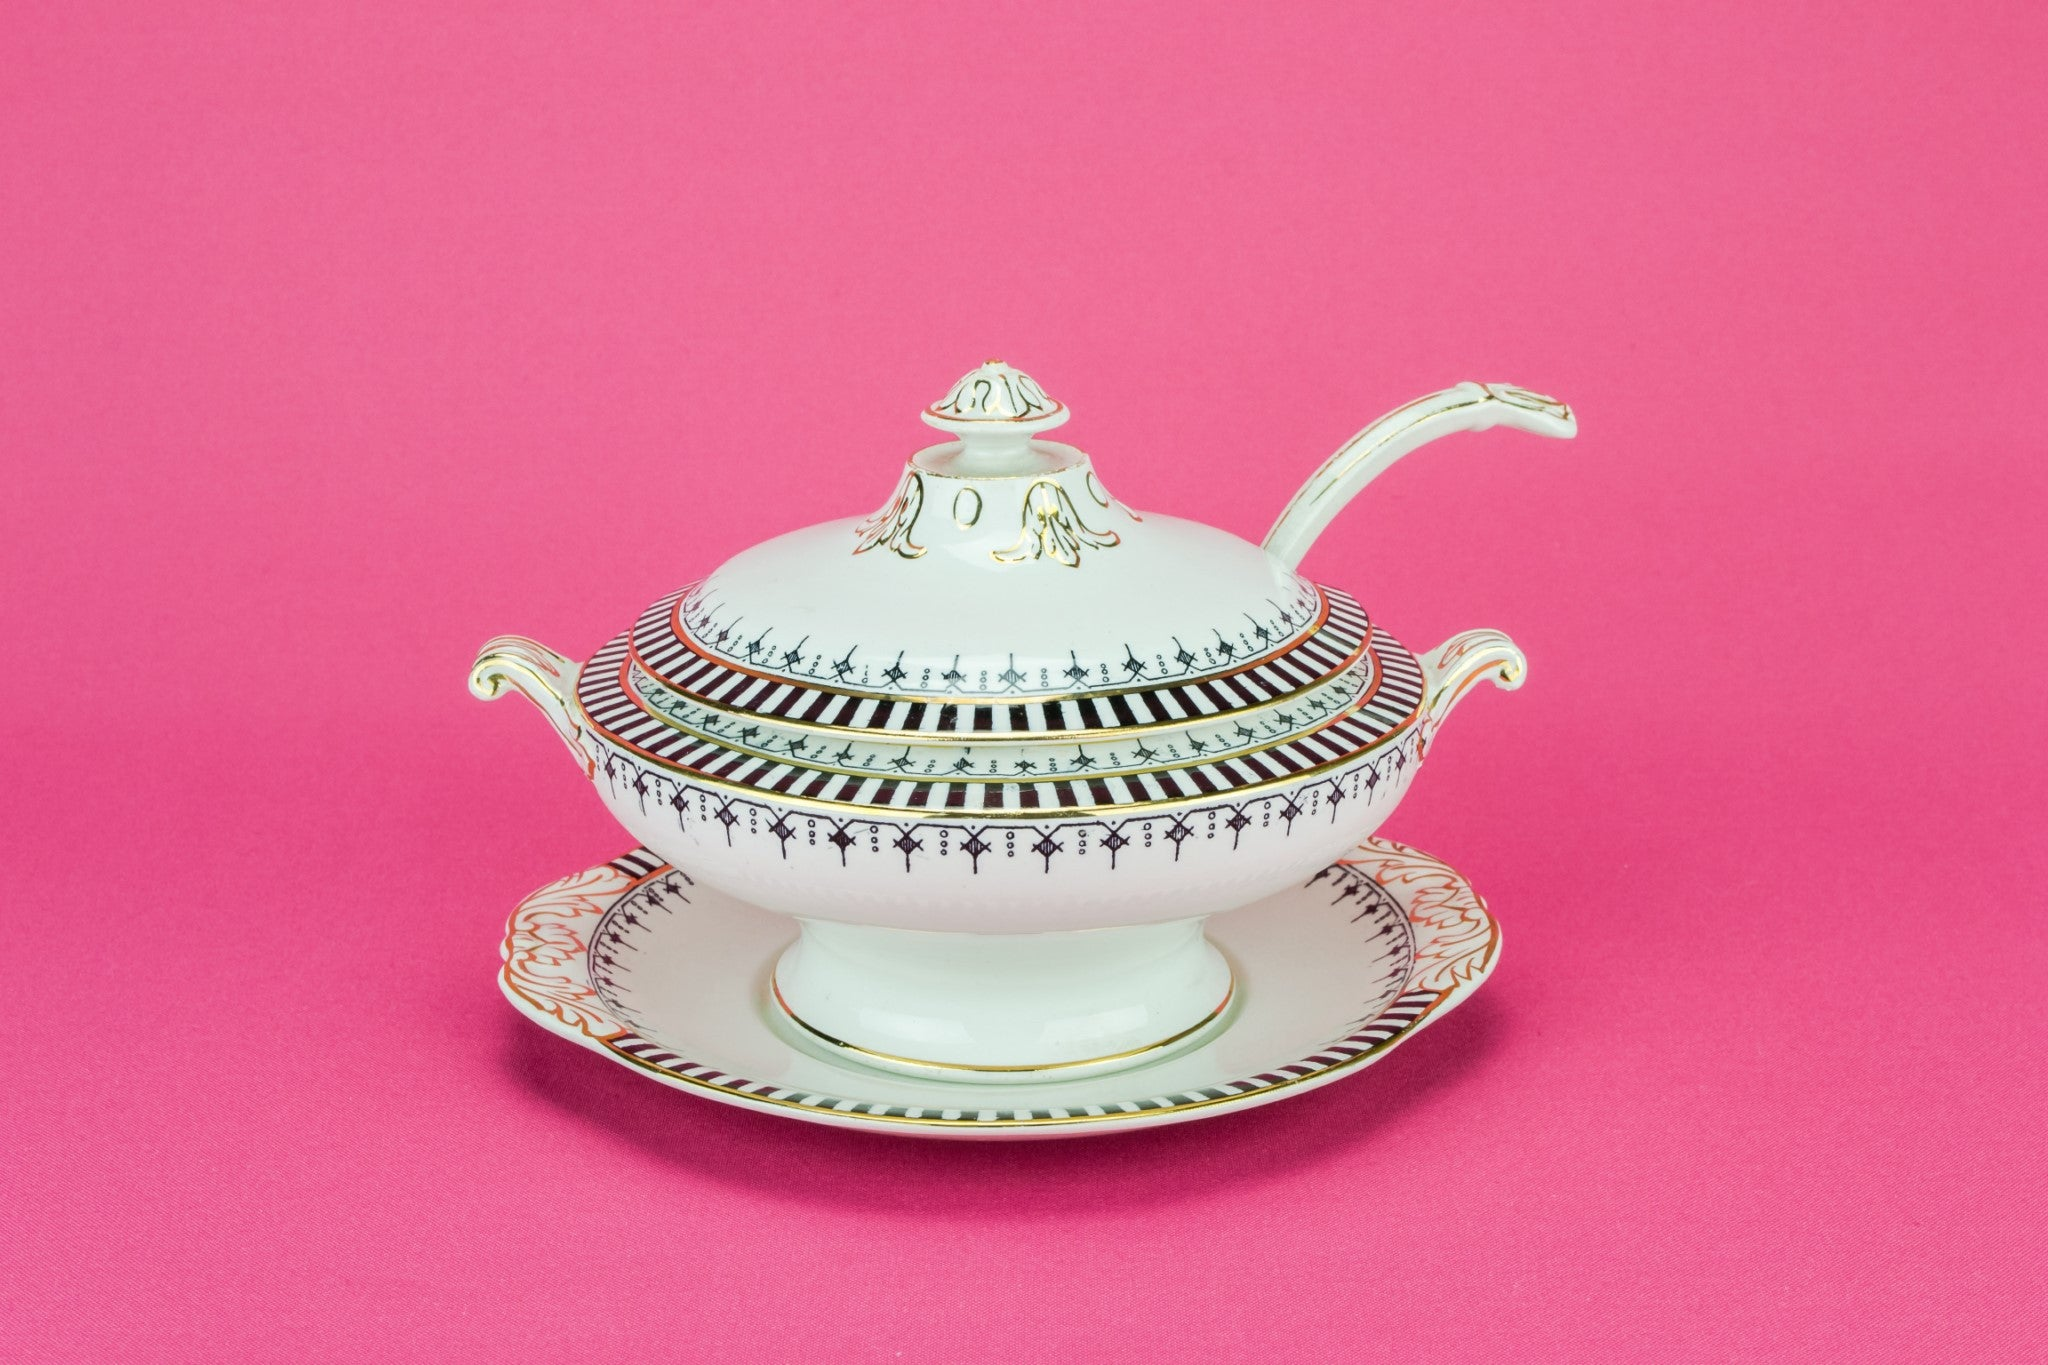 Gravy tureen and ladle